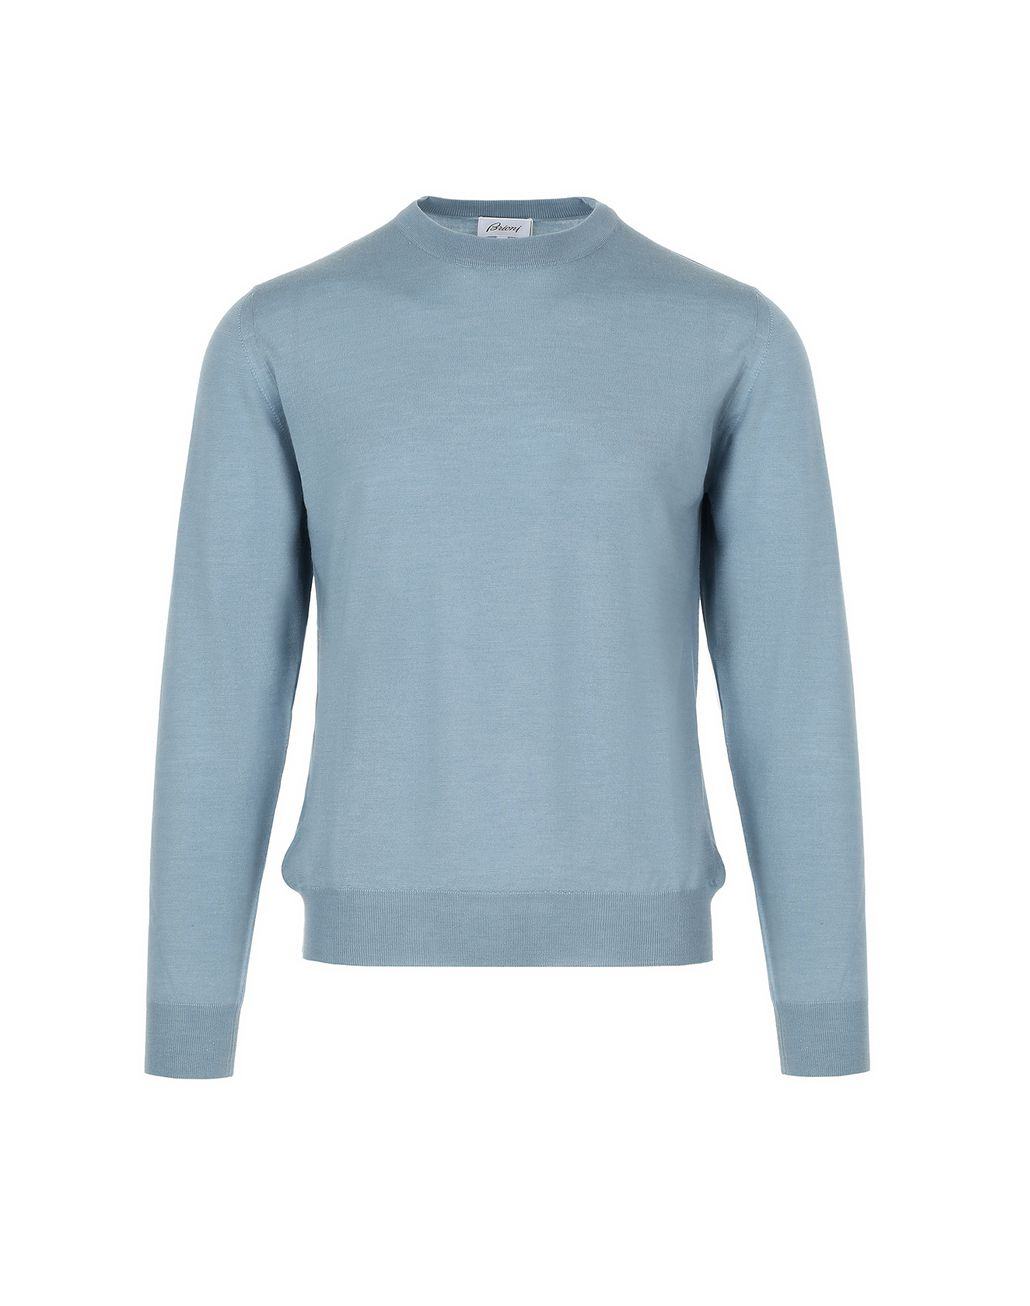 BRIONI Nile Blue Sweater Knitwear Man f